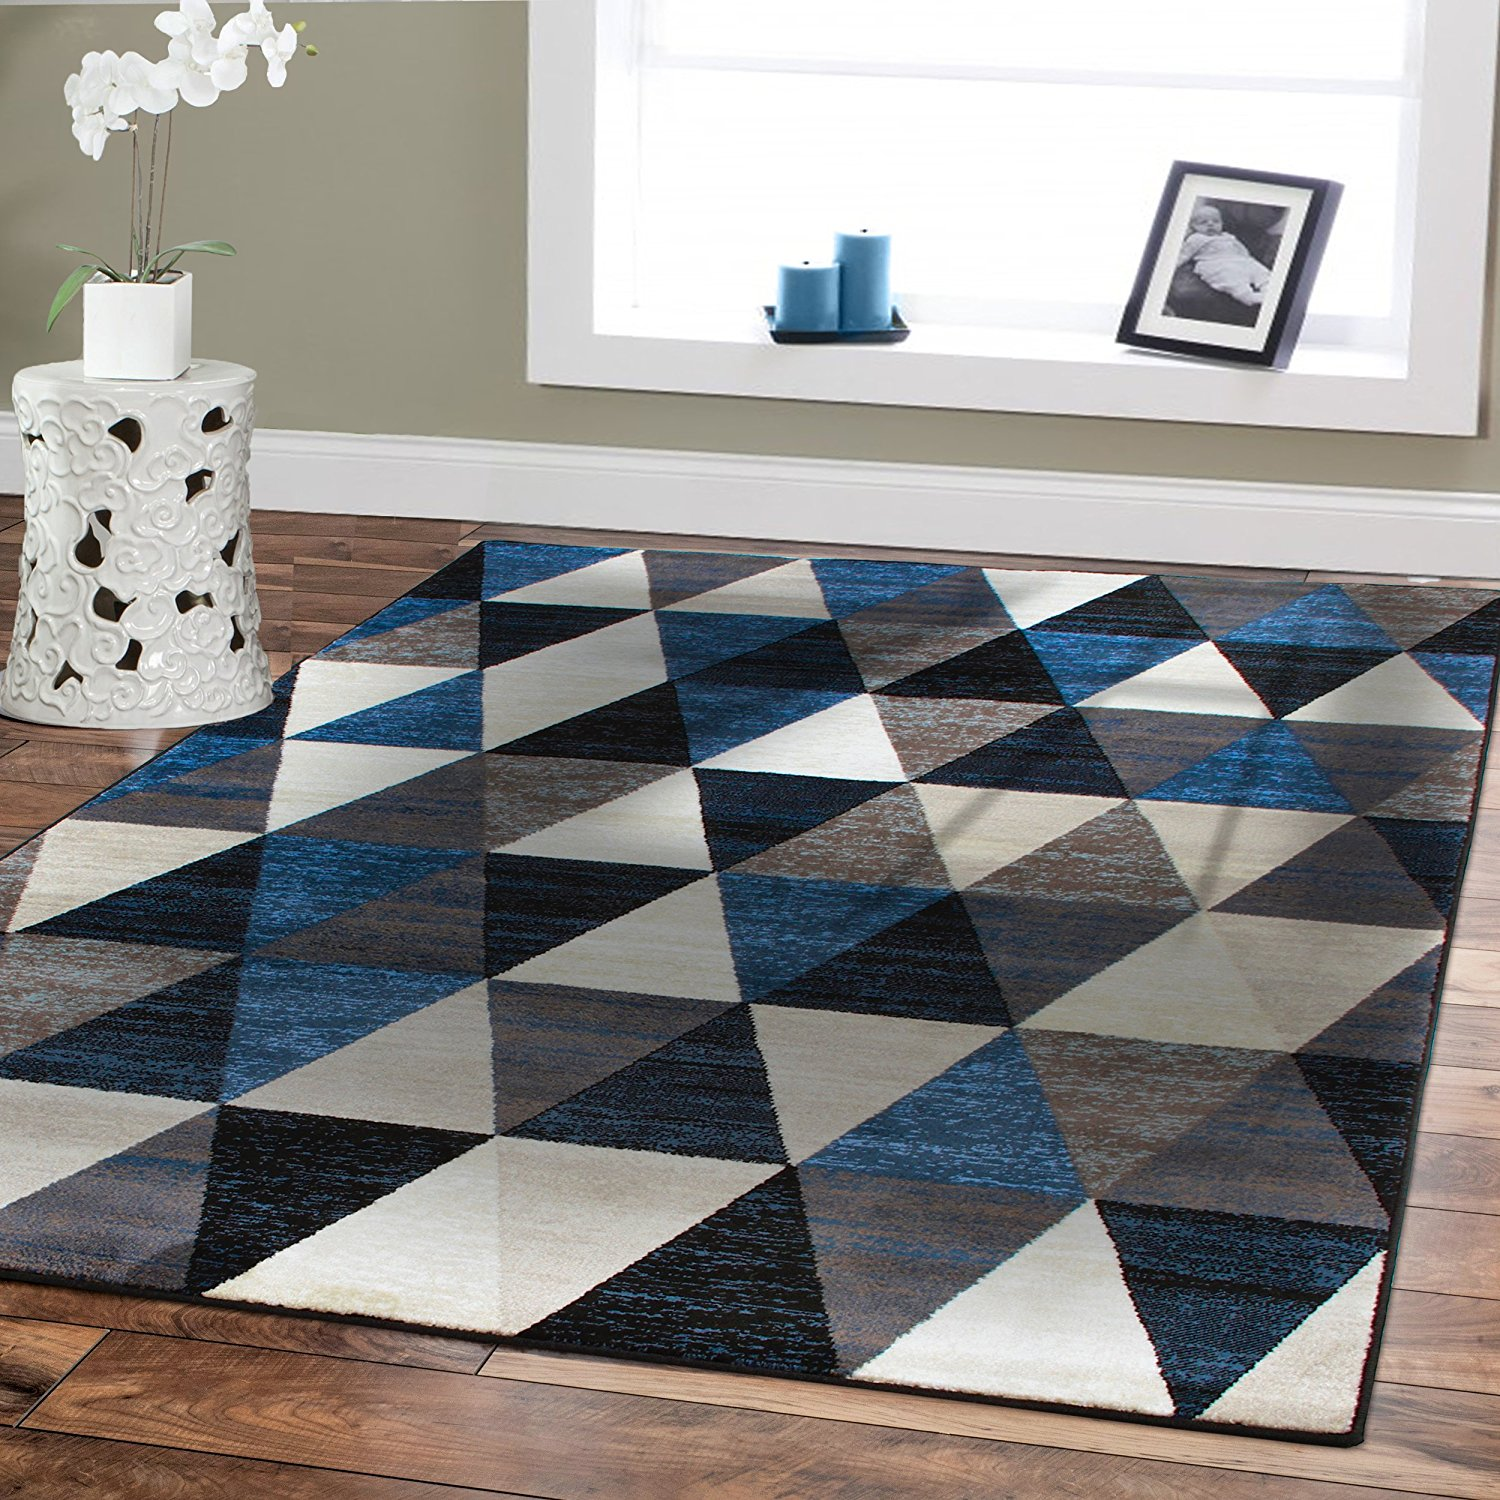 Modern carpets amazon.com: premium large rugs 8x11 modern rugs for brown sofa blue rugs HNXGRNA